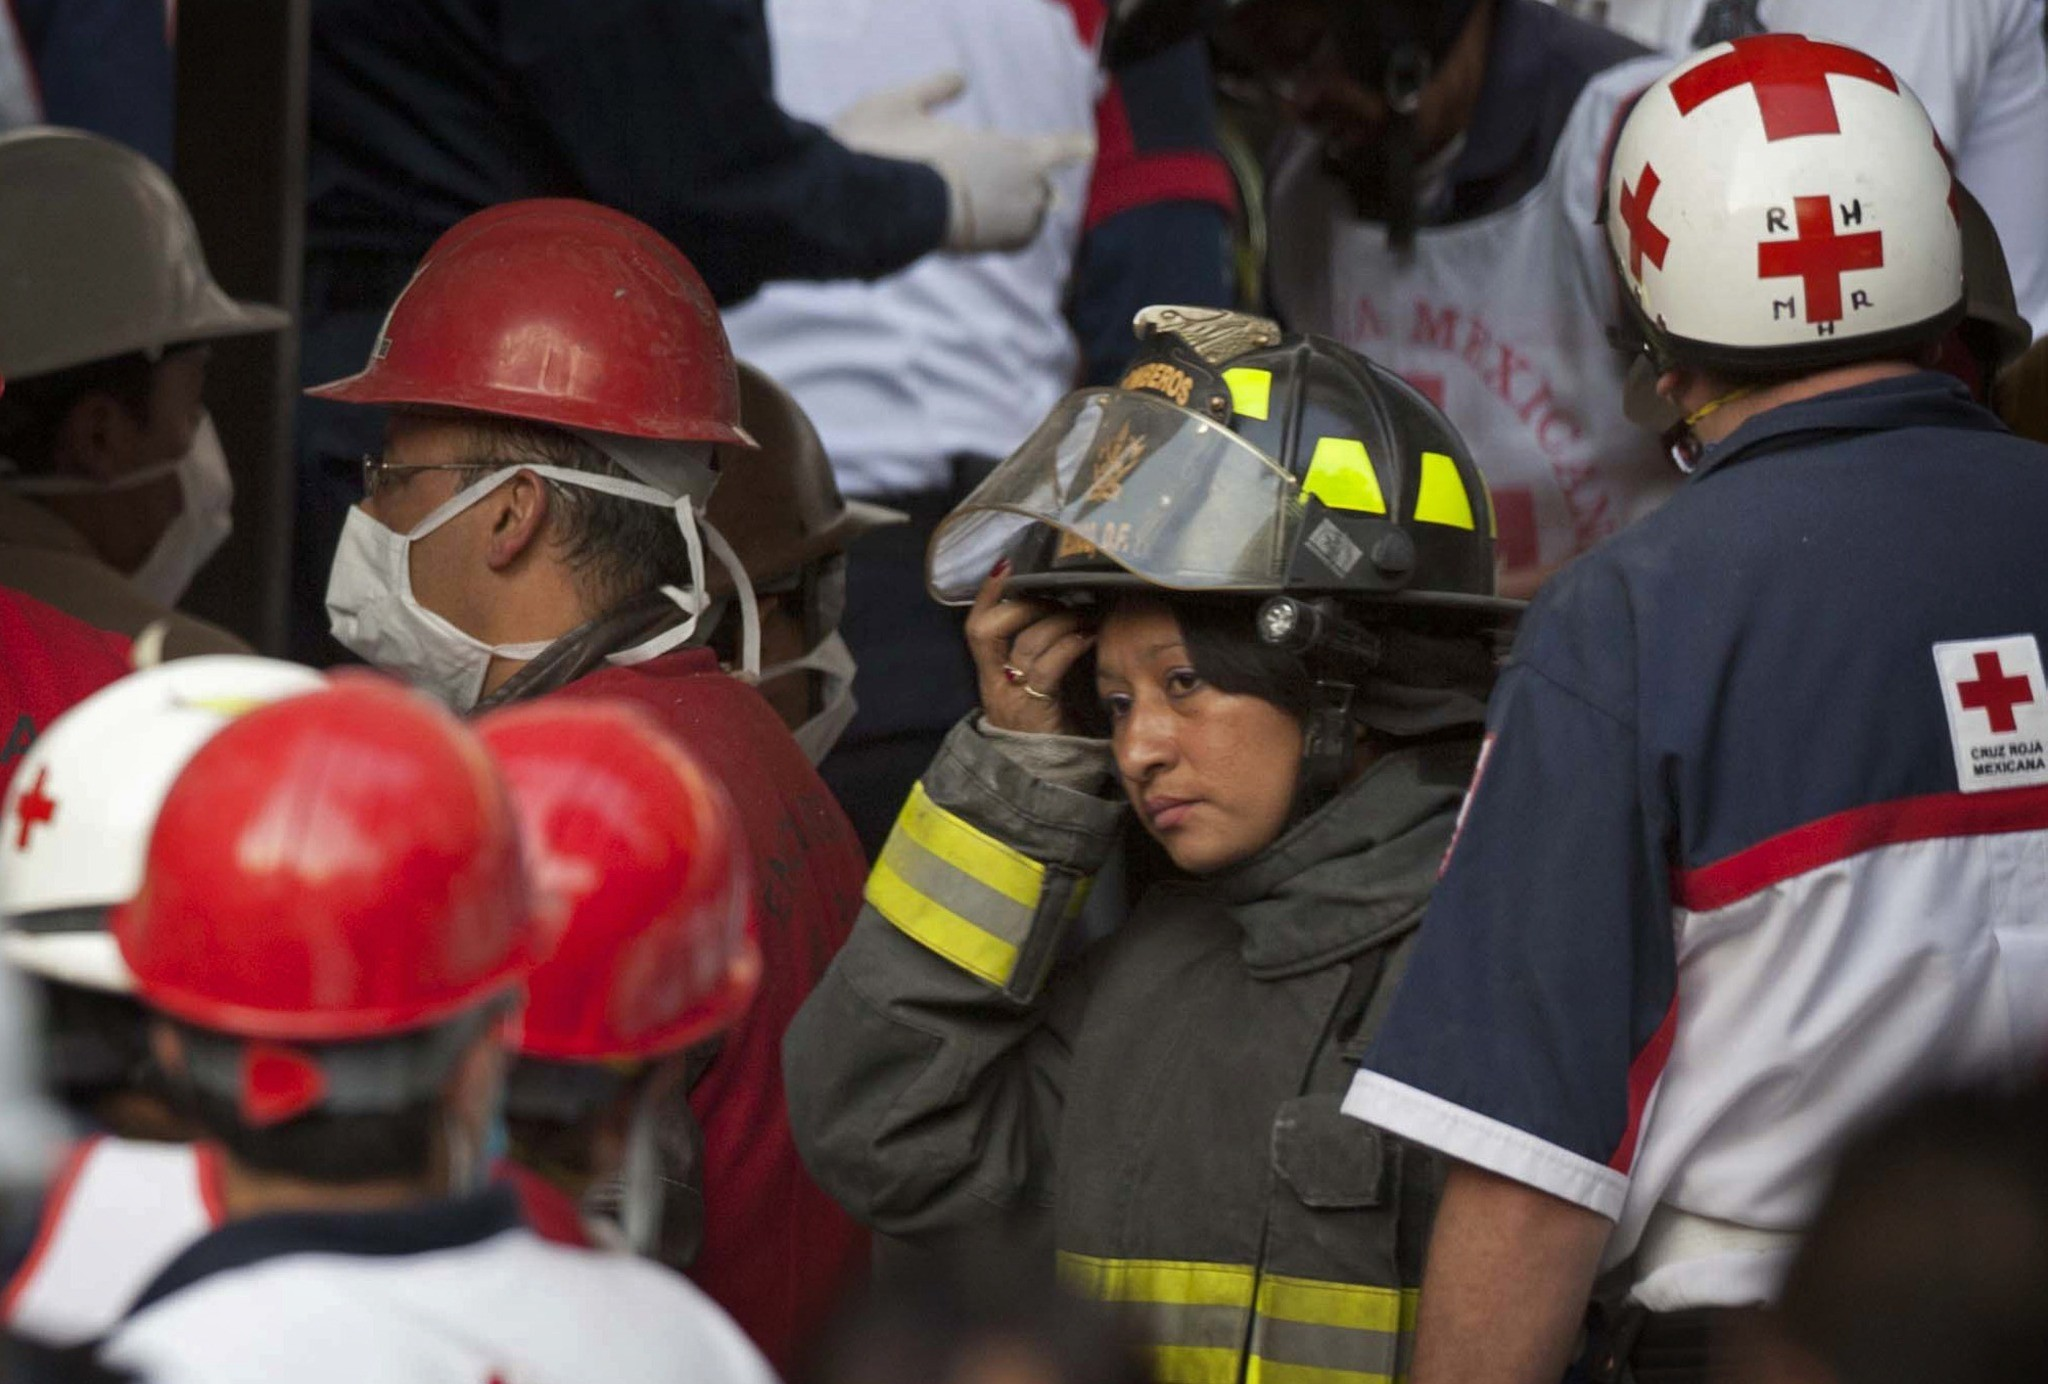 Pemex explosion in Mexico - Rescue workers and firefighters gather